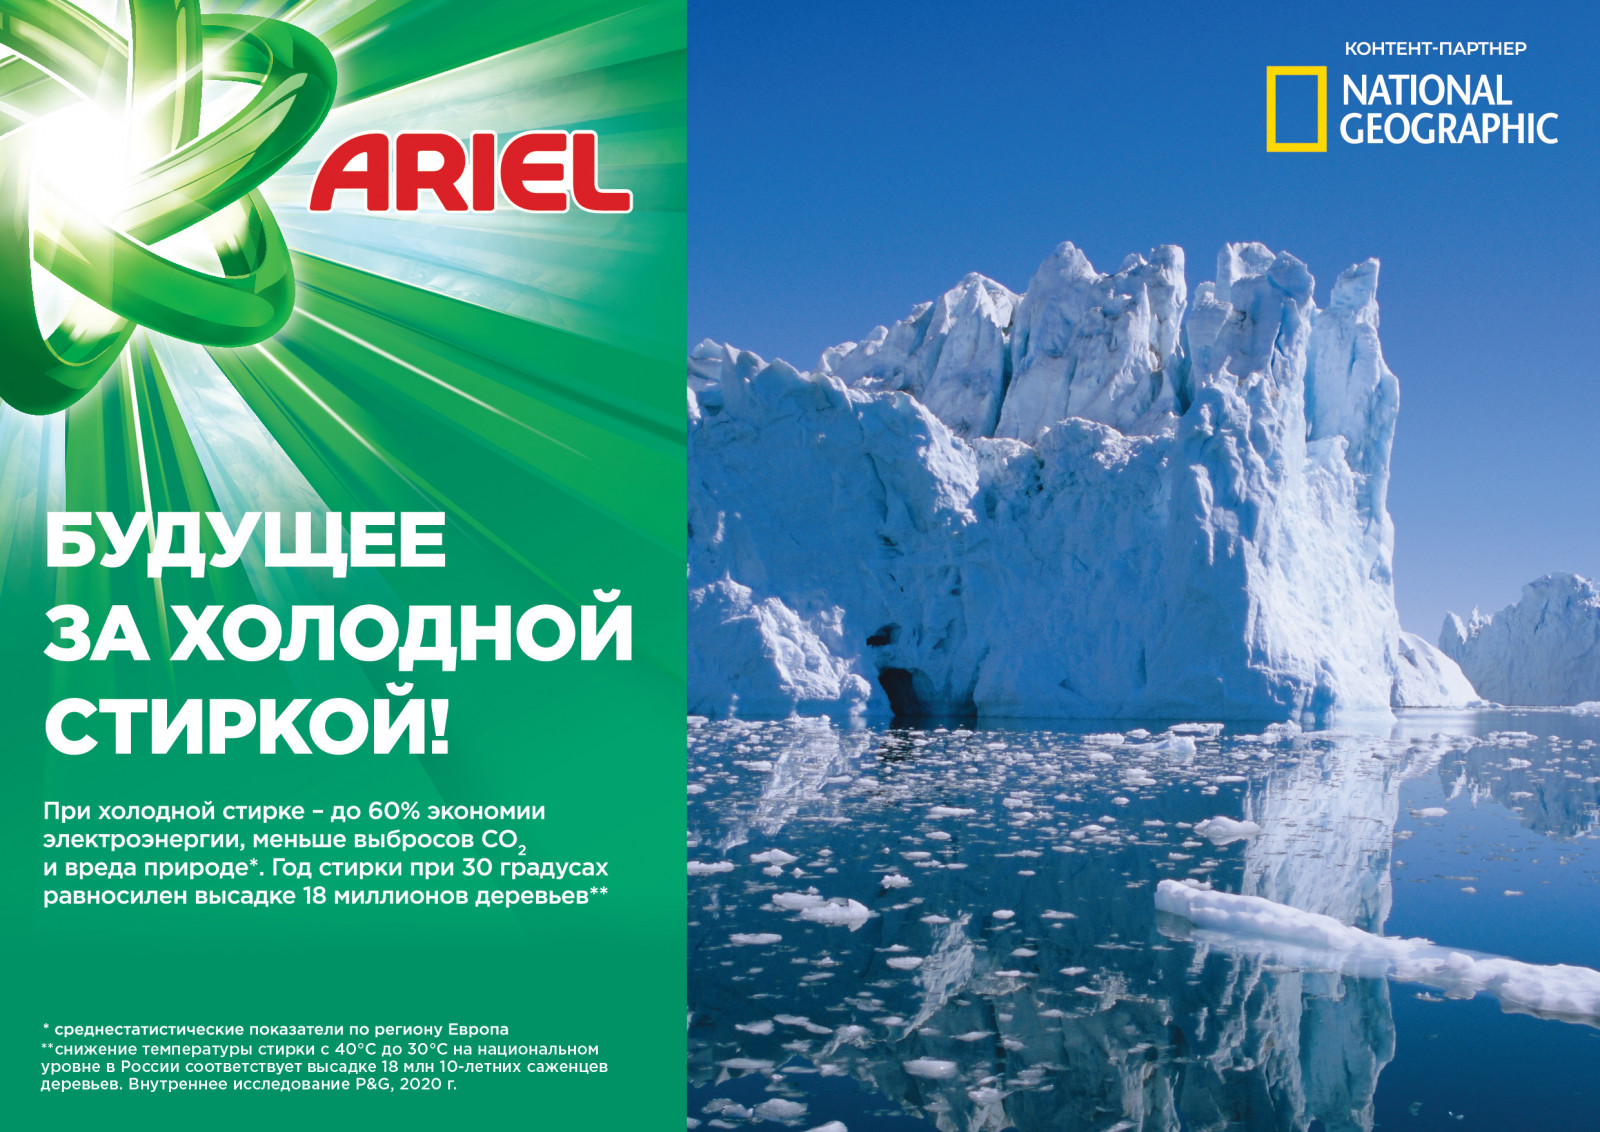 Ariel and National Geographic action